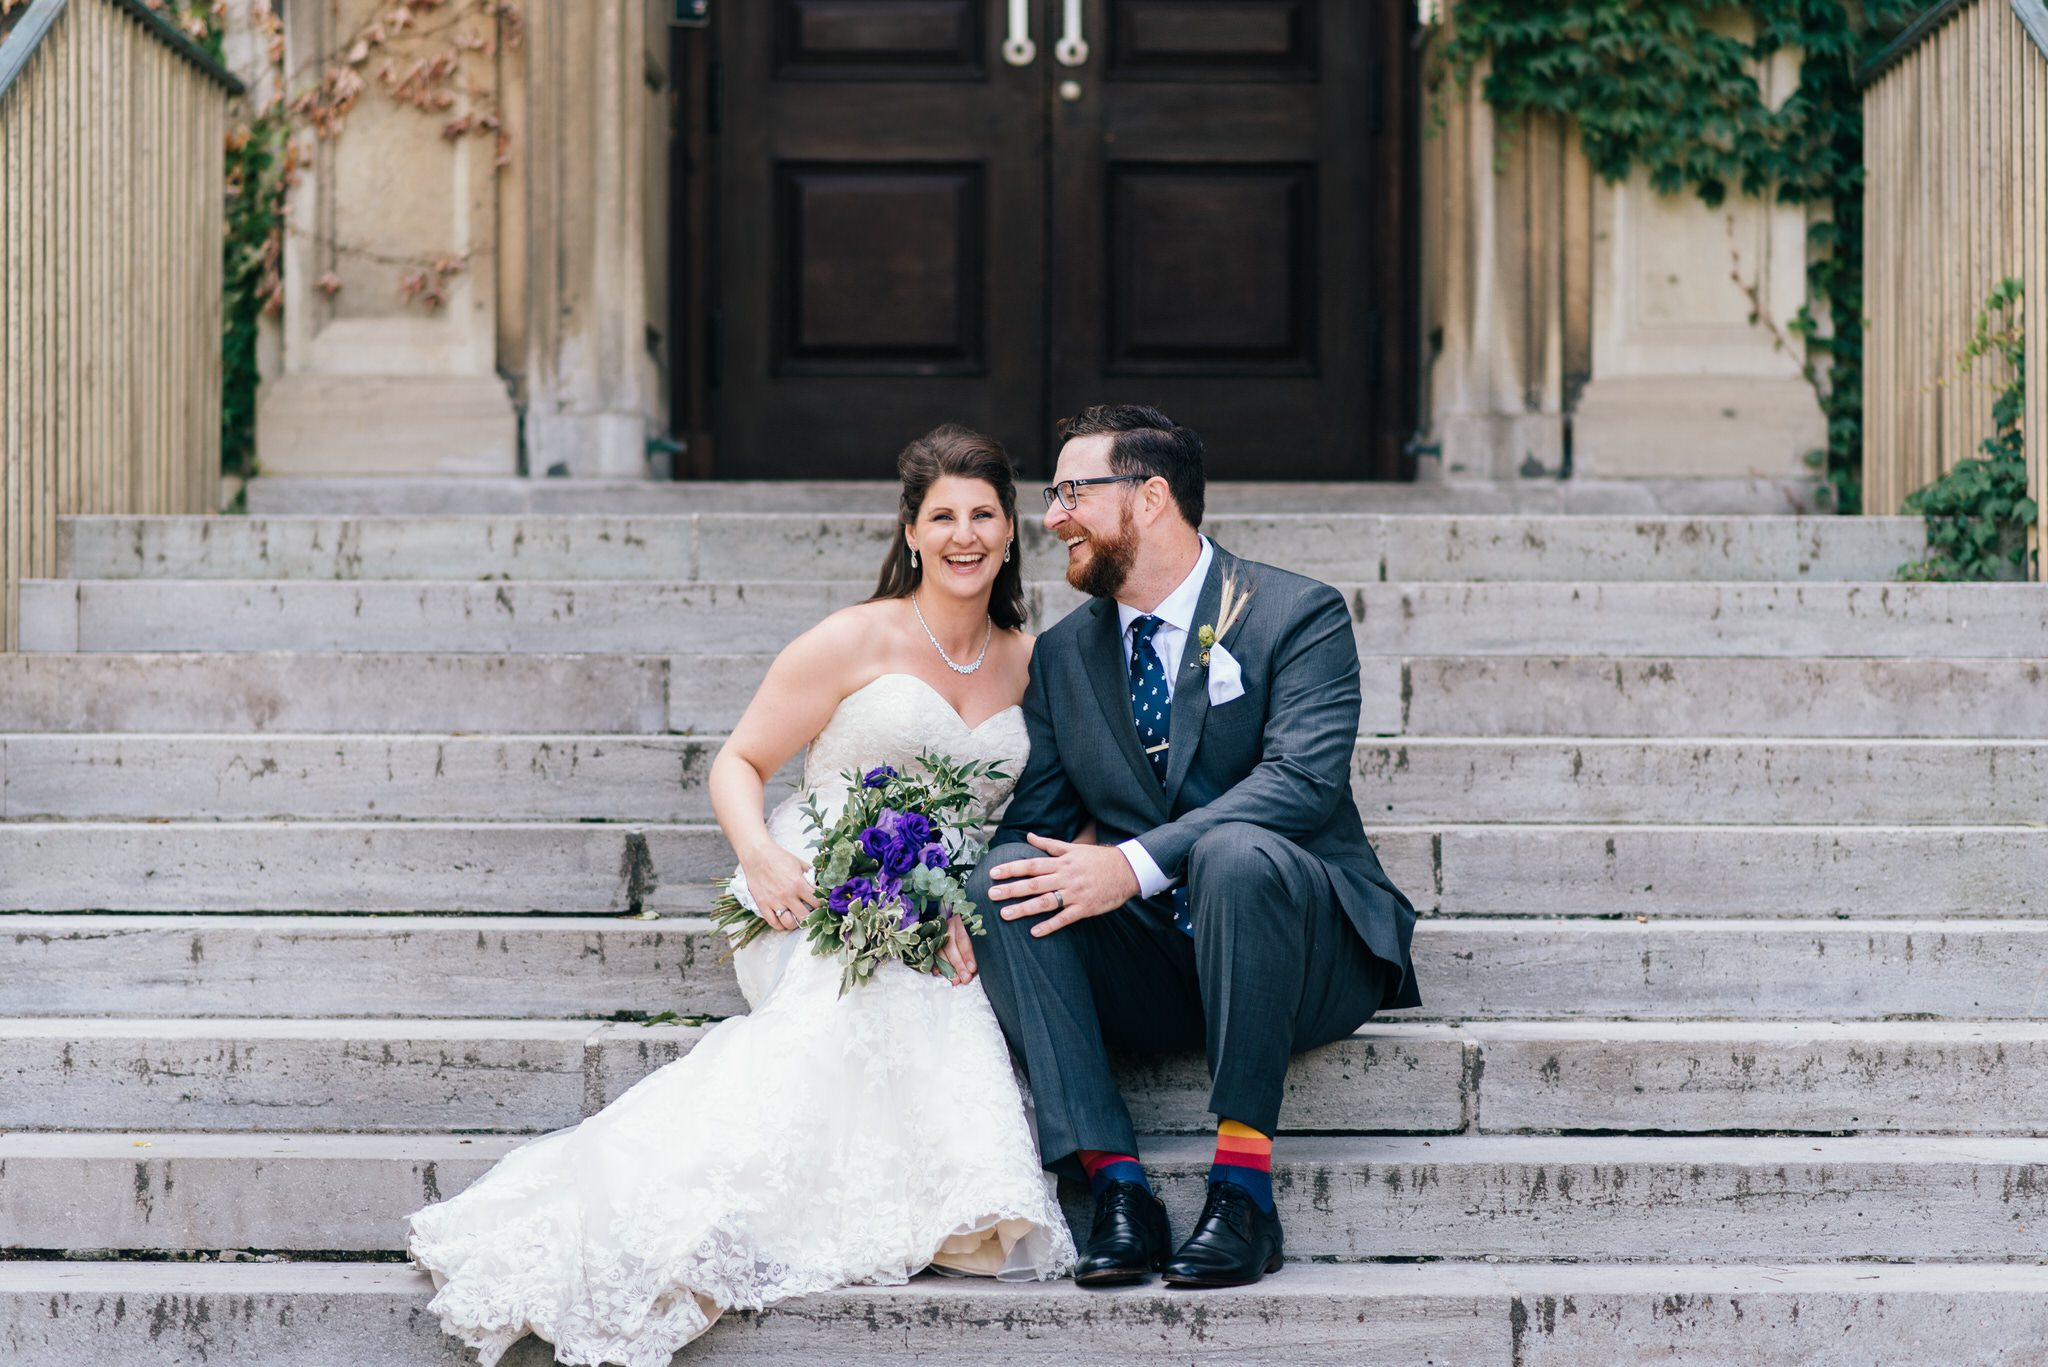 The bride and groom laugh on the steps of an ivy covered University of Toronto building.